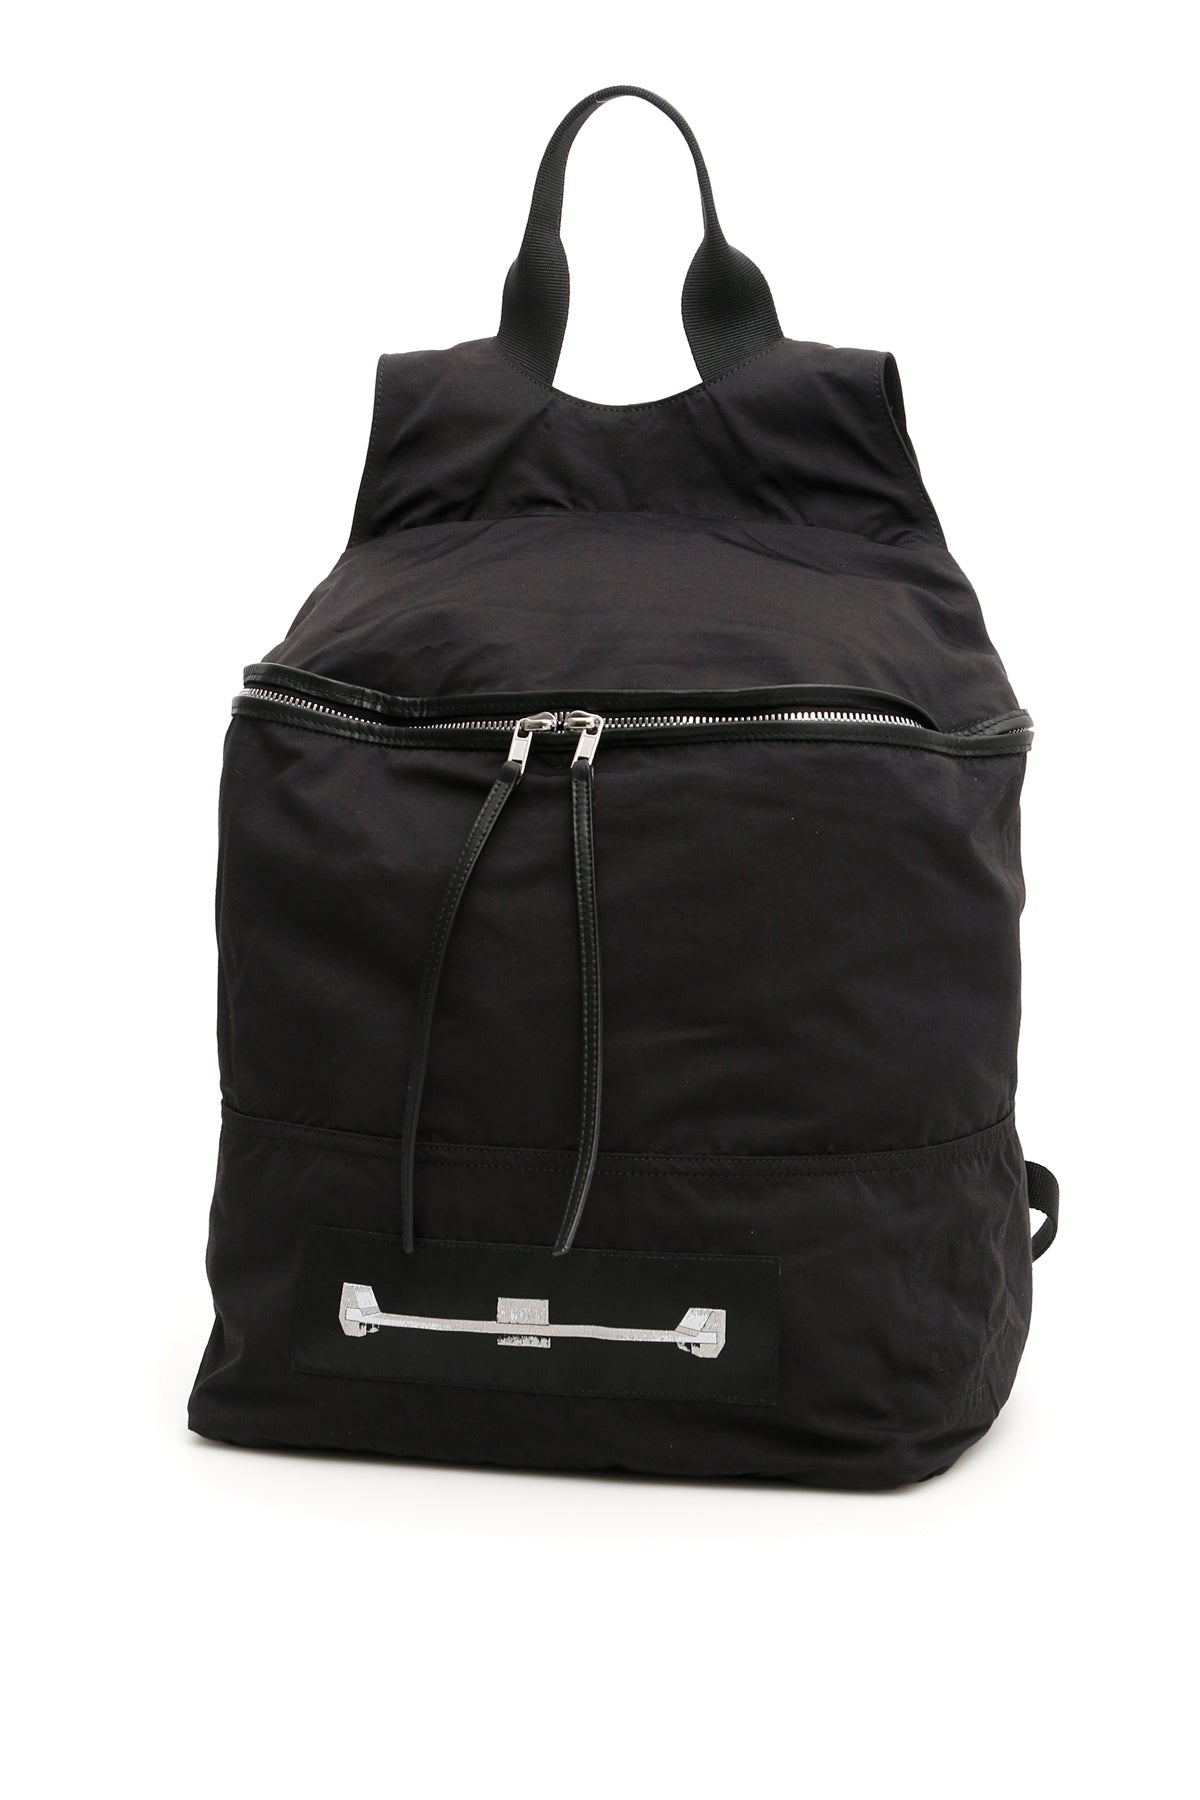 Rick Owens Drkshdw Backpacks RICK OWENS DRKSHDW FRONT PATCH ZIPPED BACKPACK